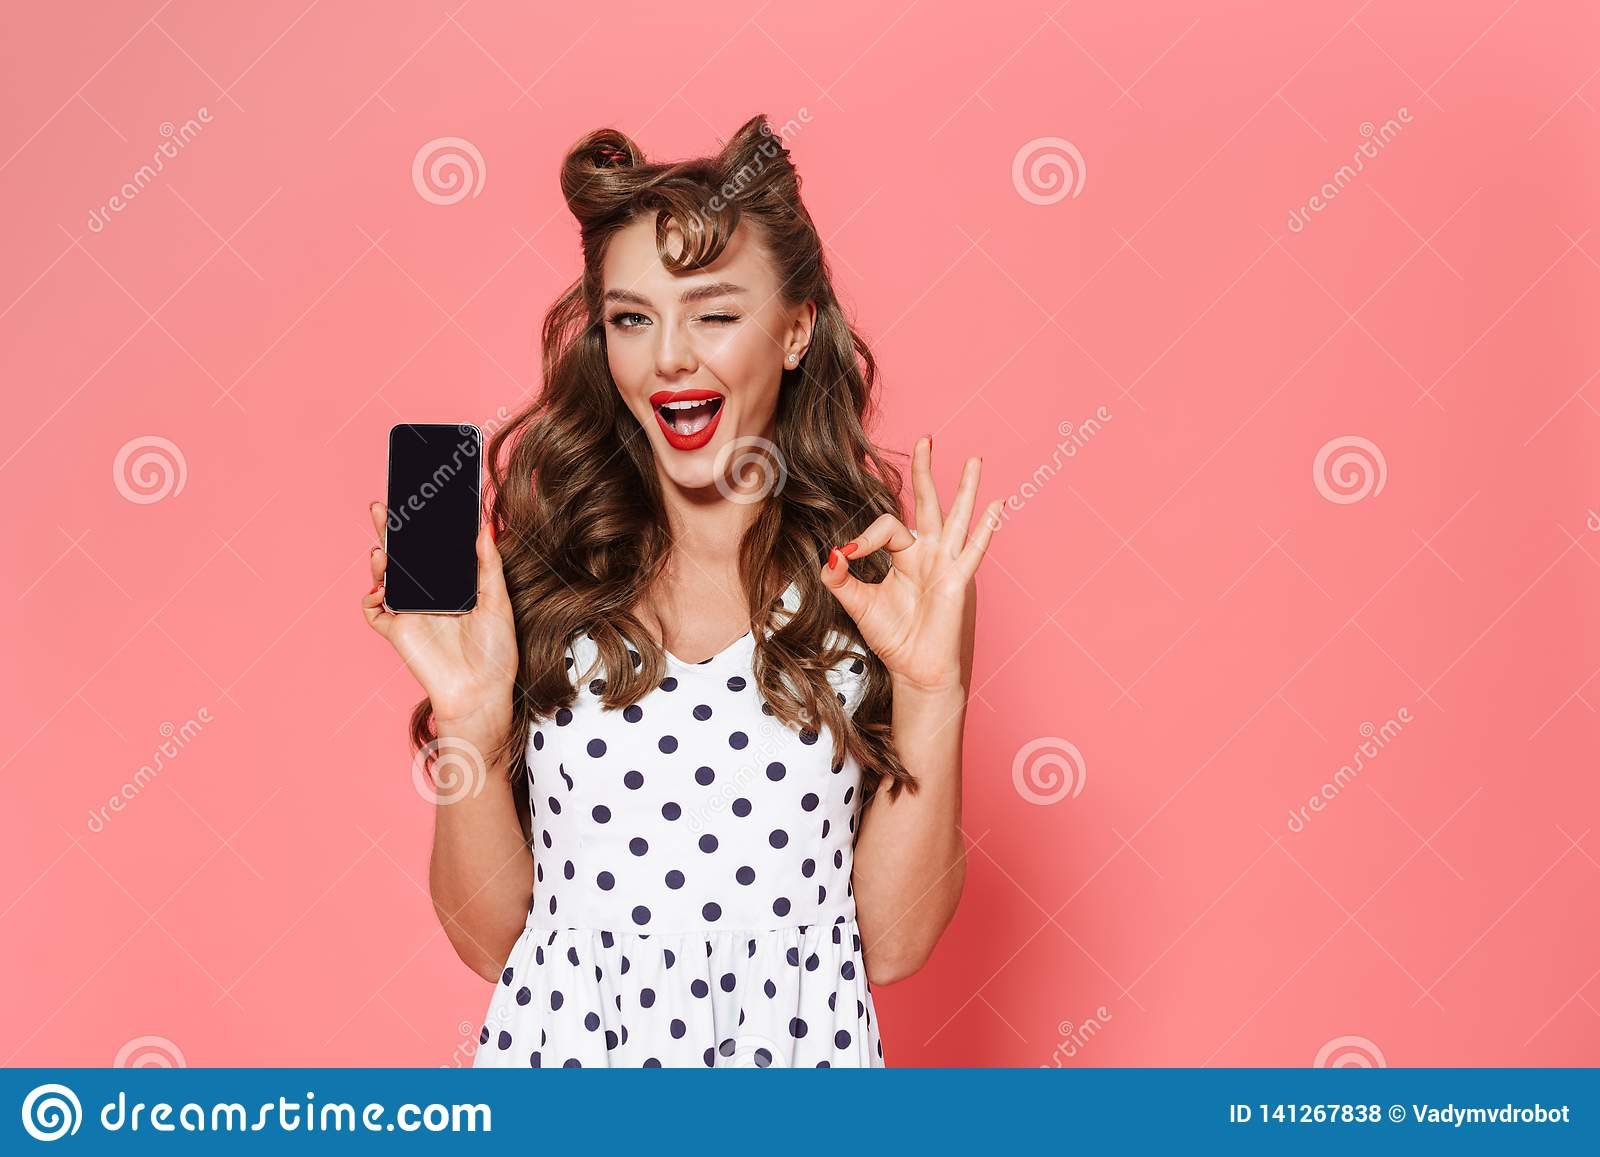 6bd788411 Portrait of a beautiful young pin-up girl wearing dress standing isolated  over pink background